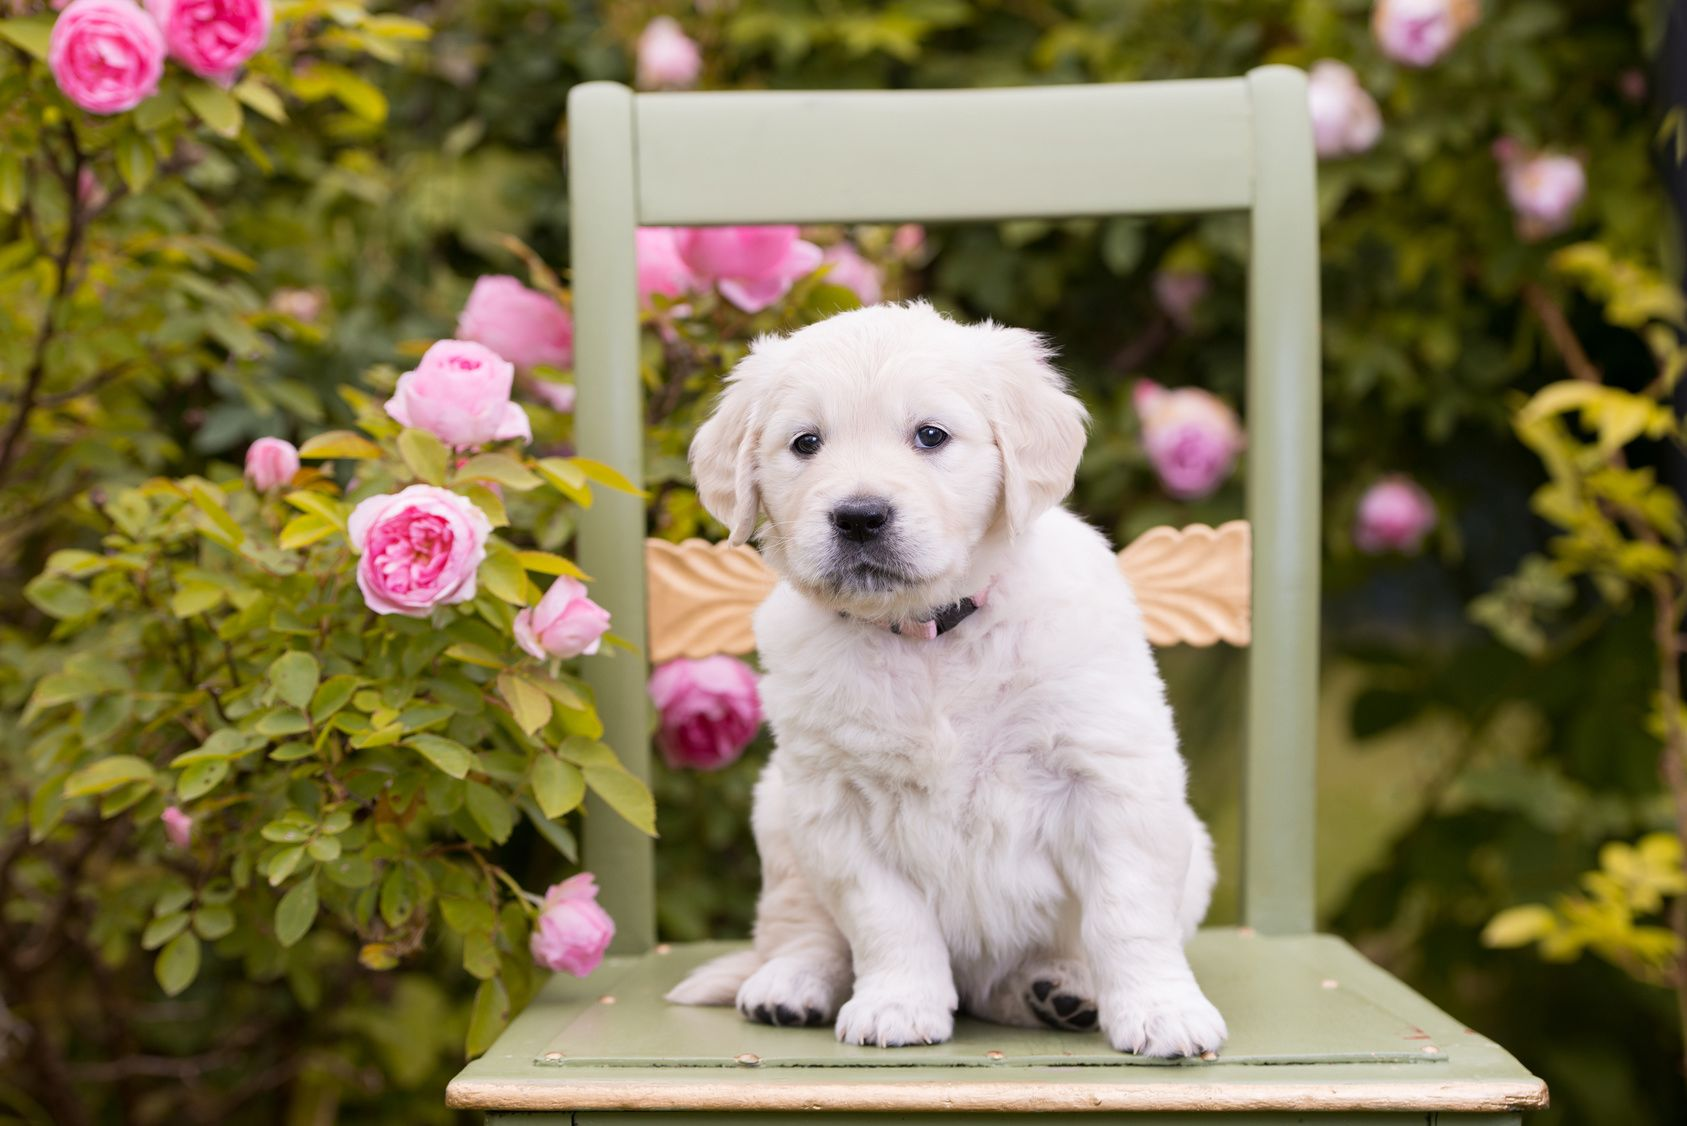 adorable golden retriever puppy sitting on a chair